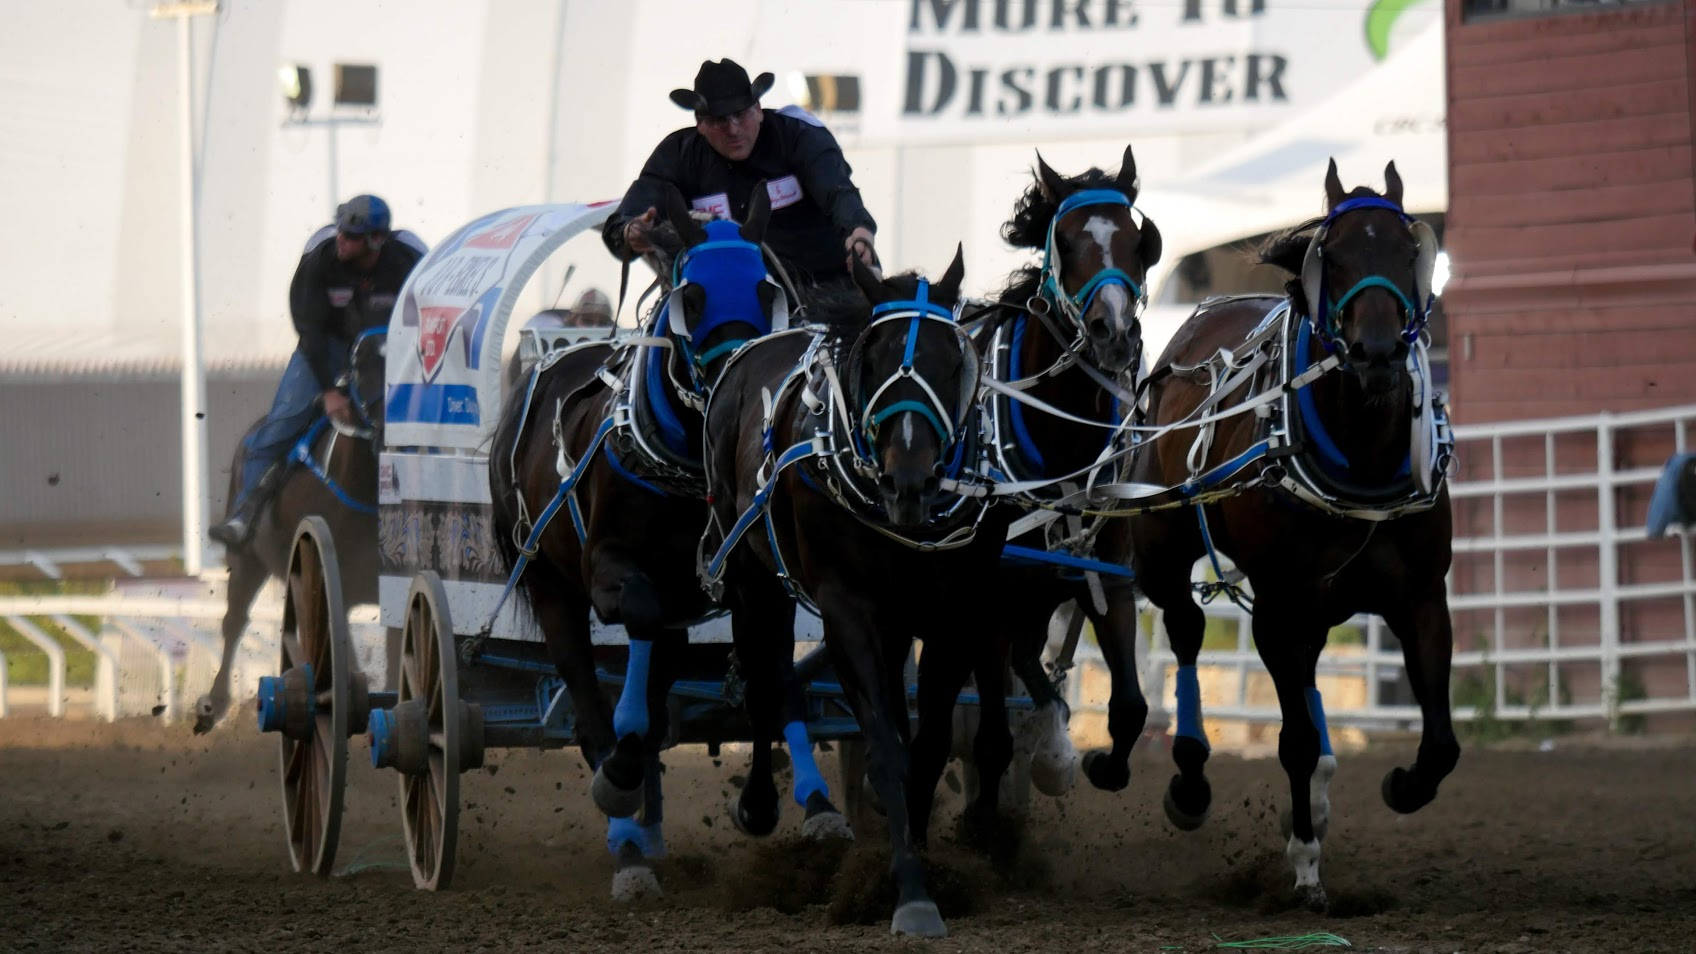 Alberta government responds to review of chuckwagon races